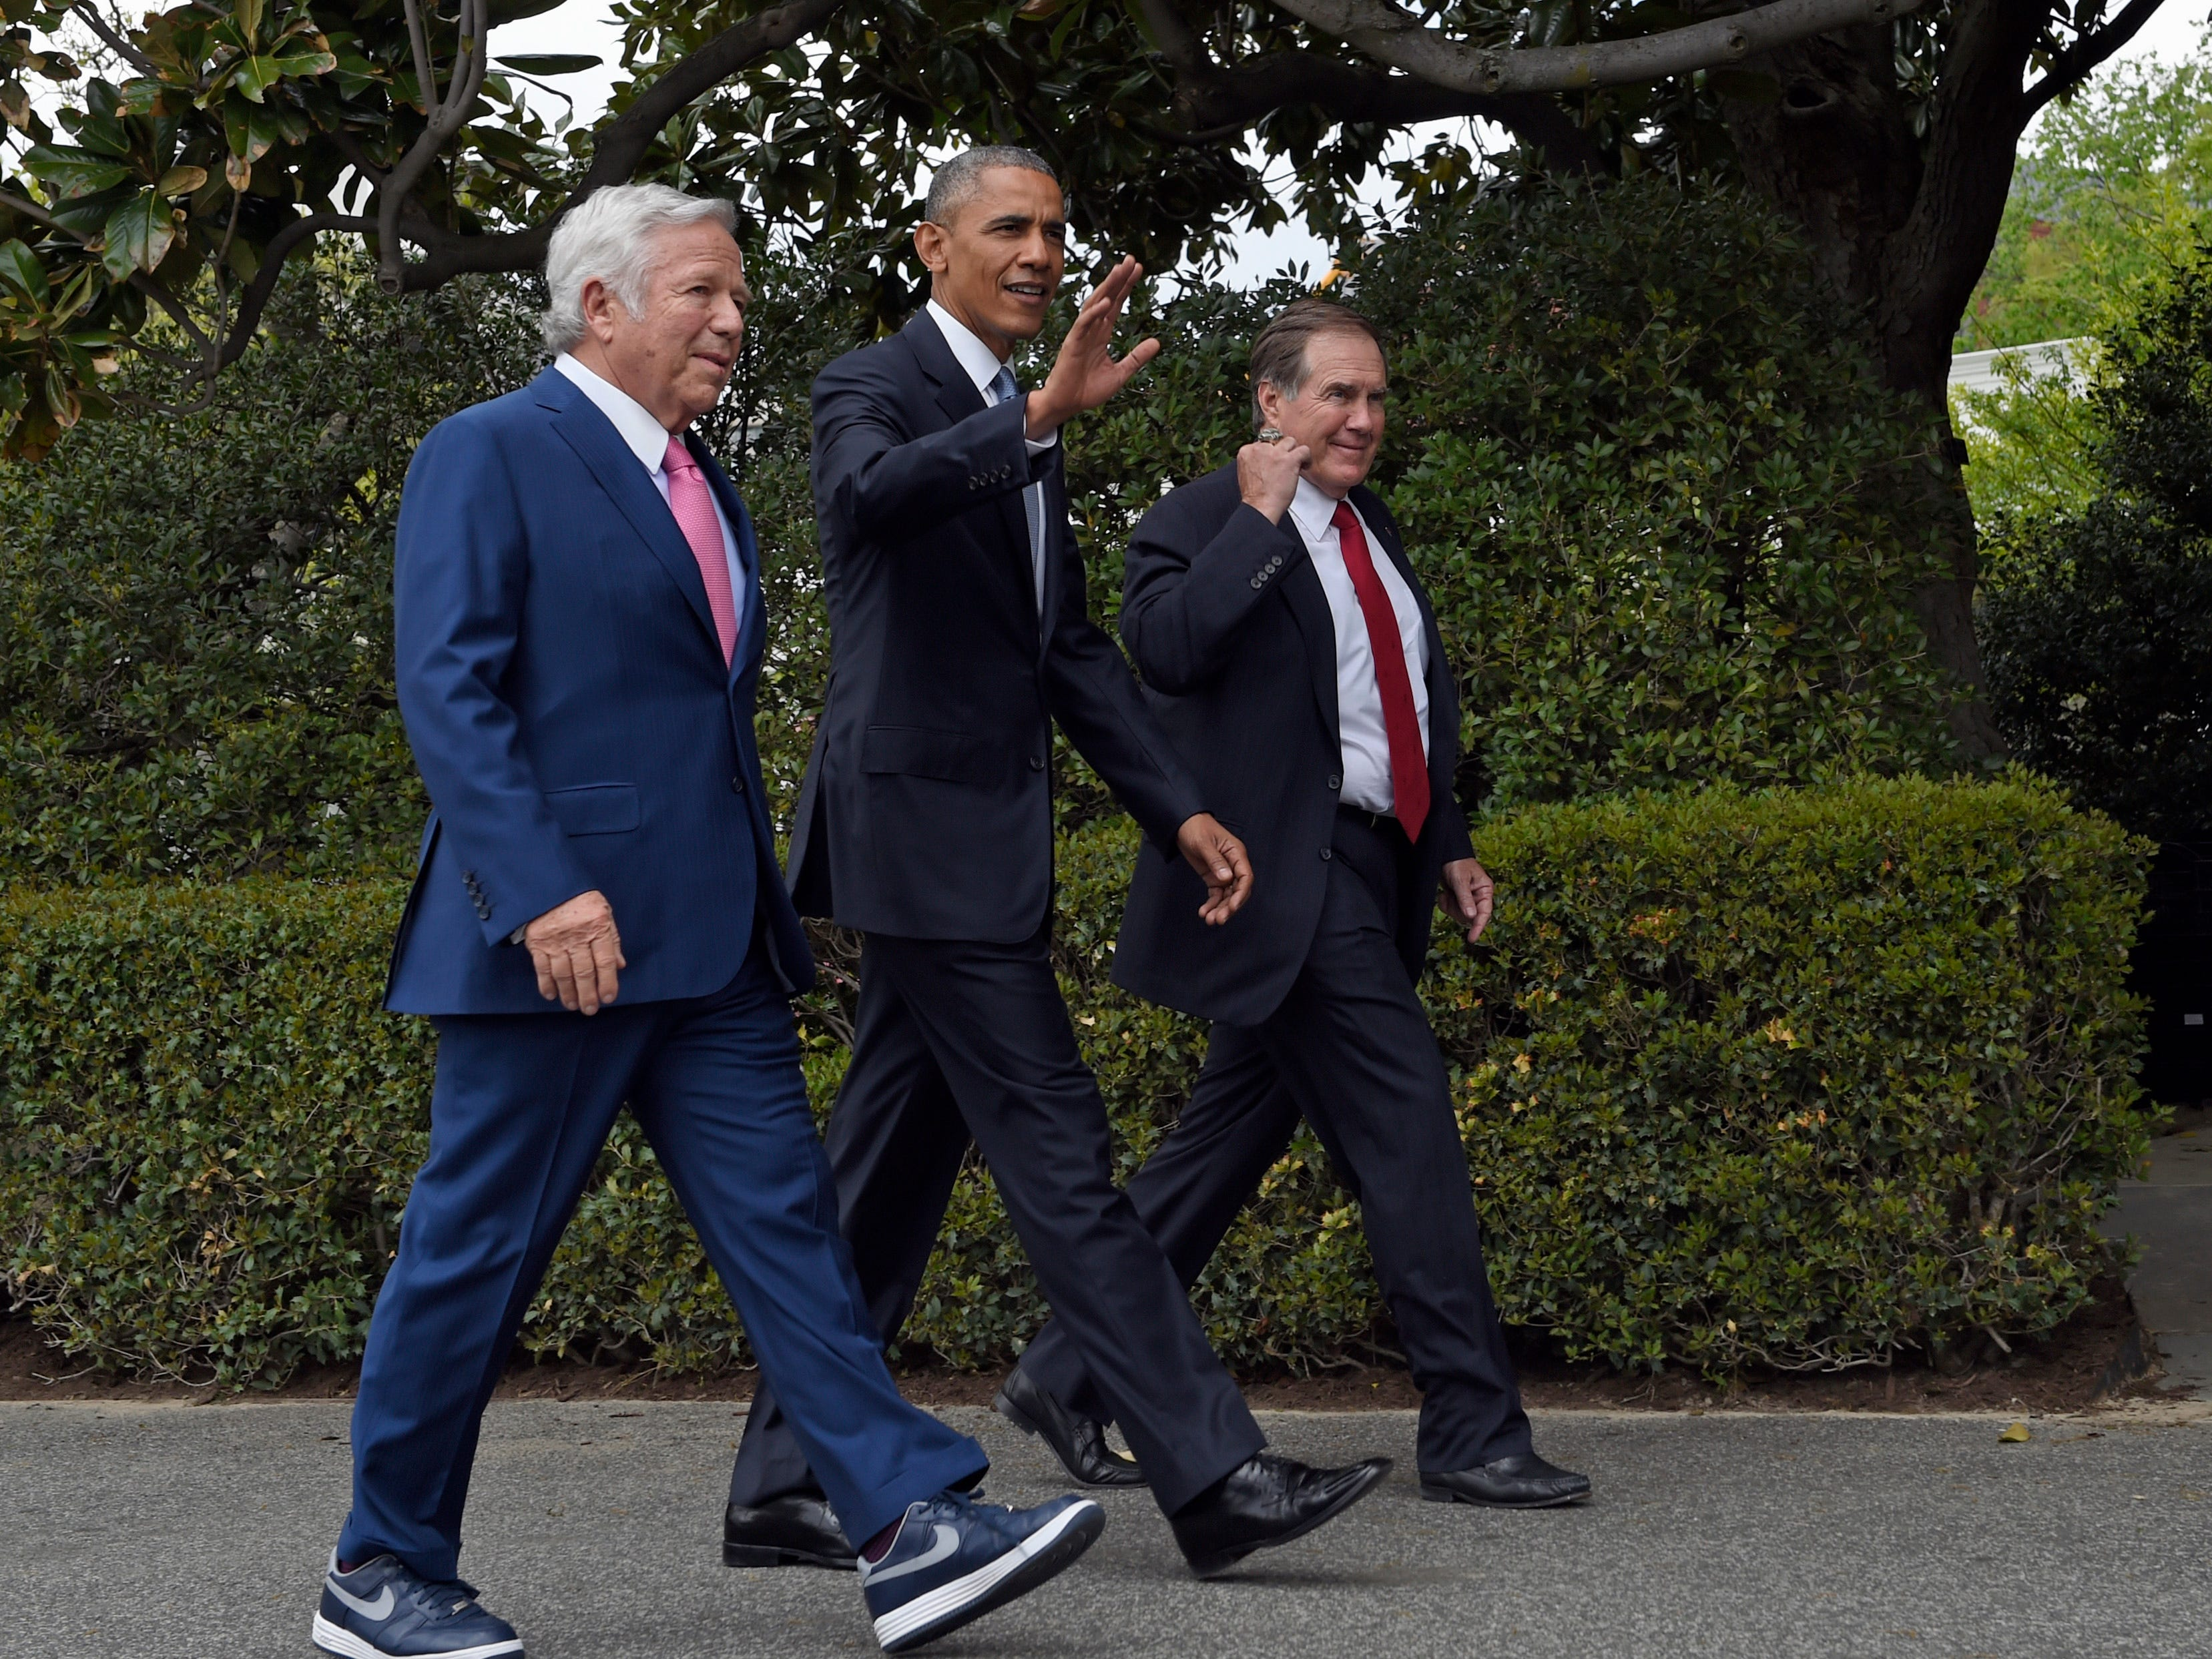 President Barack Obama walks with Kraft and Belichick as they arrive for a ceremony to honor the Patriots' Super Bowl XLIX victory on the South Lawn of the White House.